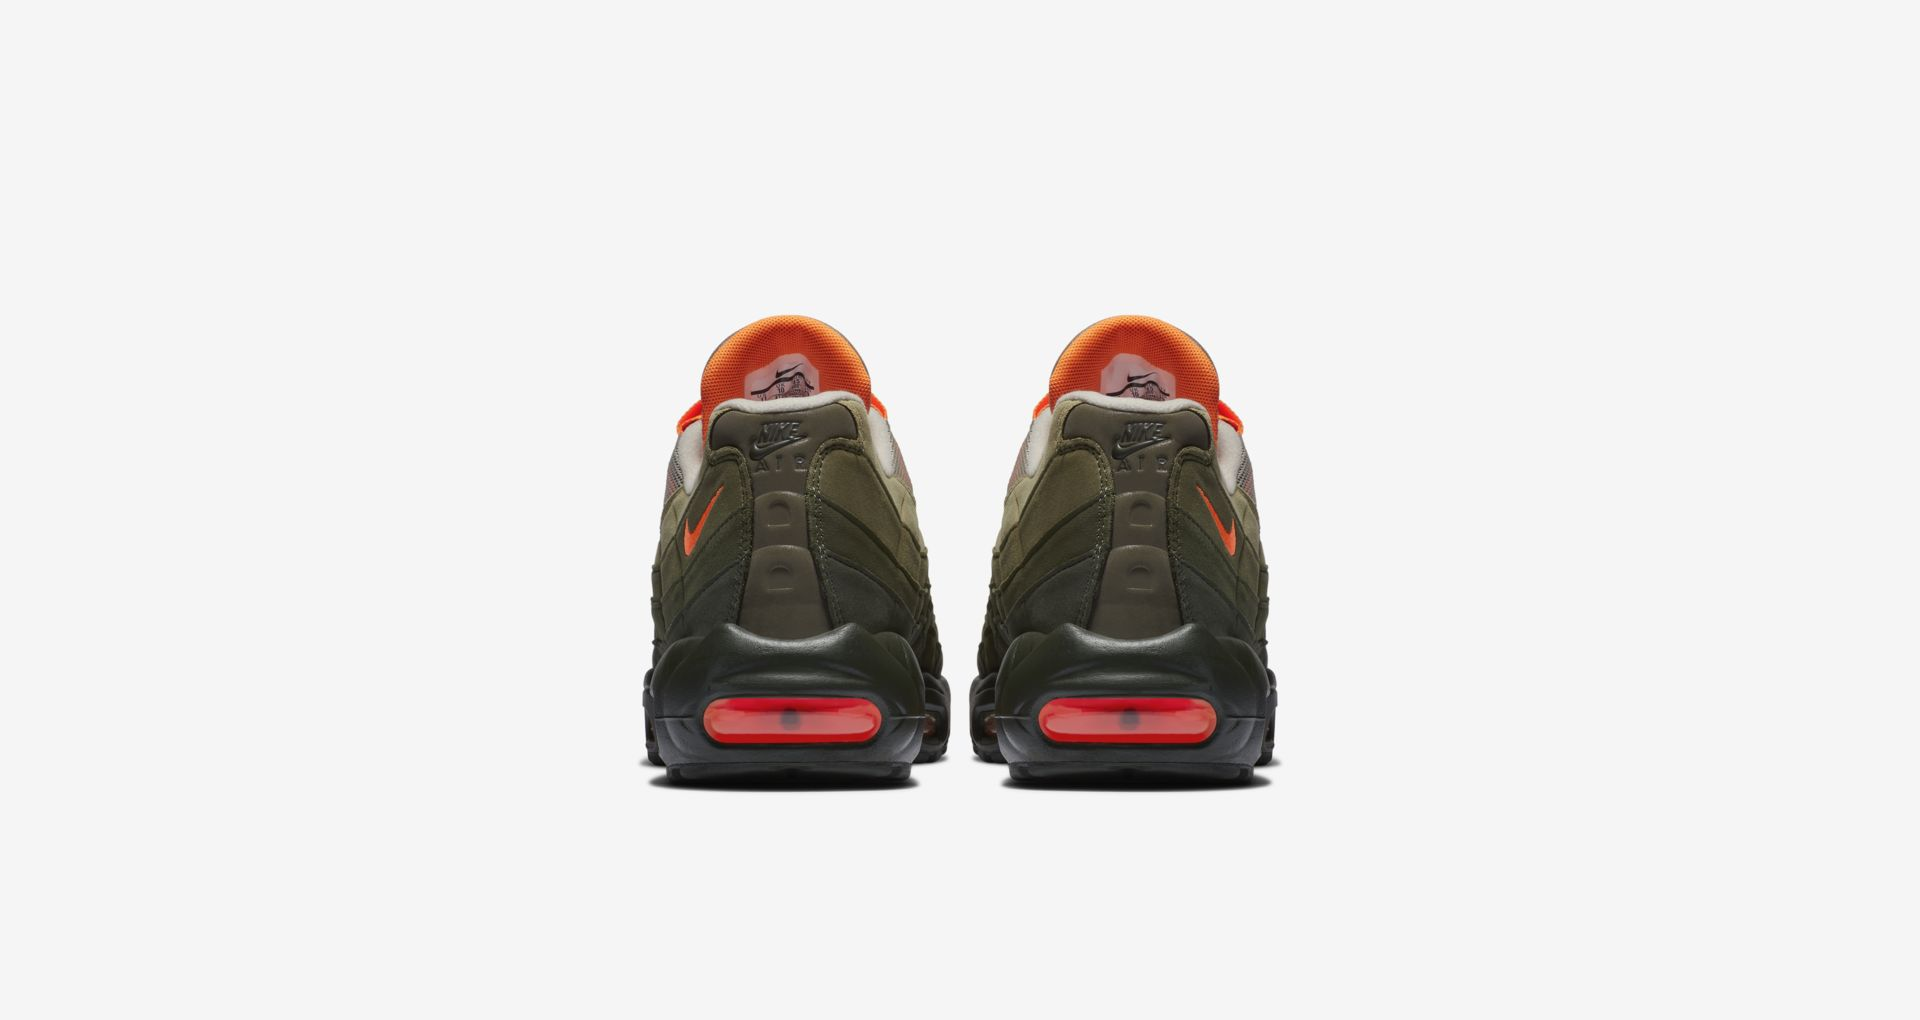 AT2865 200 Nike Air Max 95 OG Total Orange 5